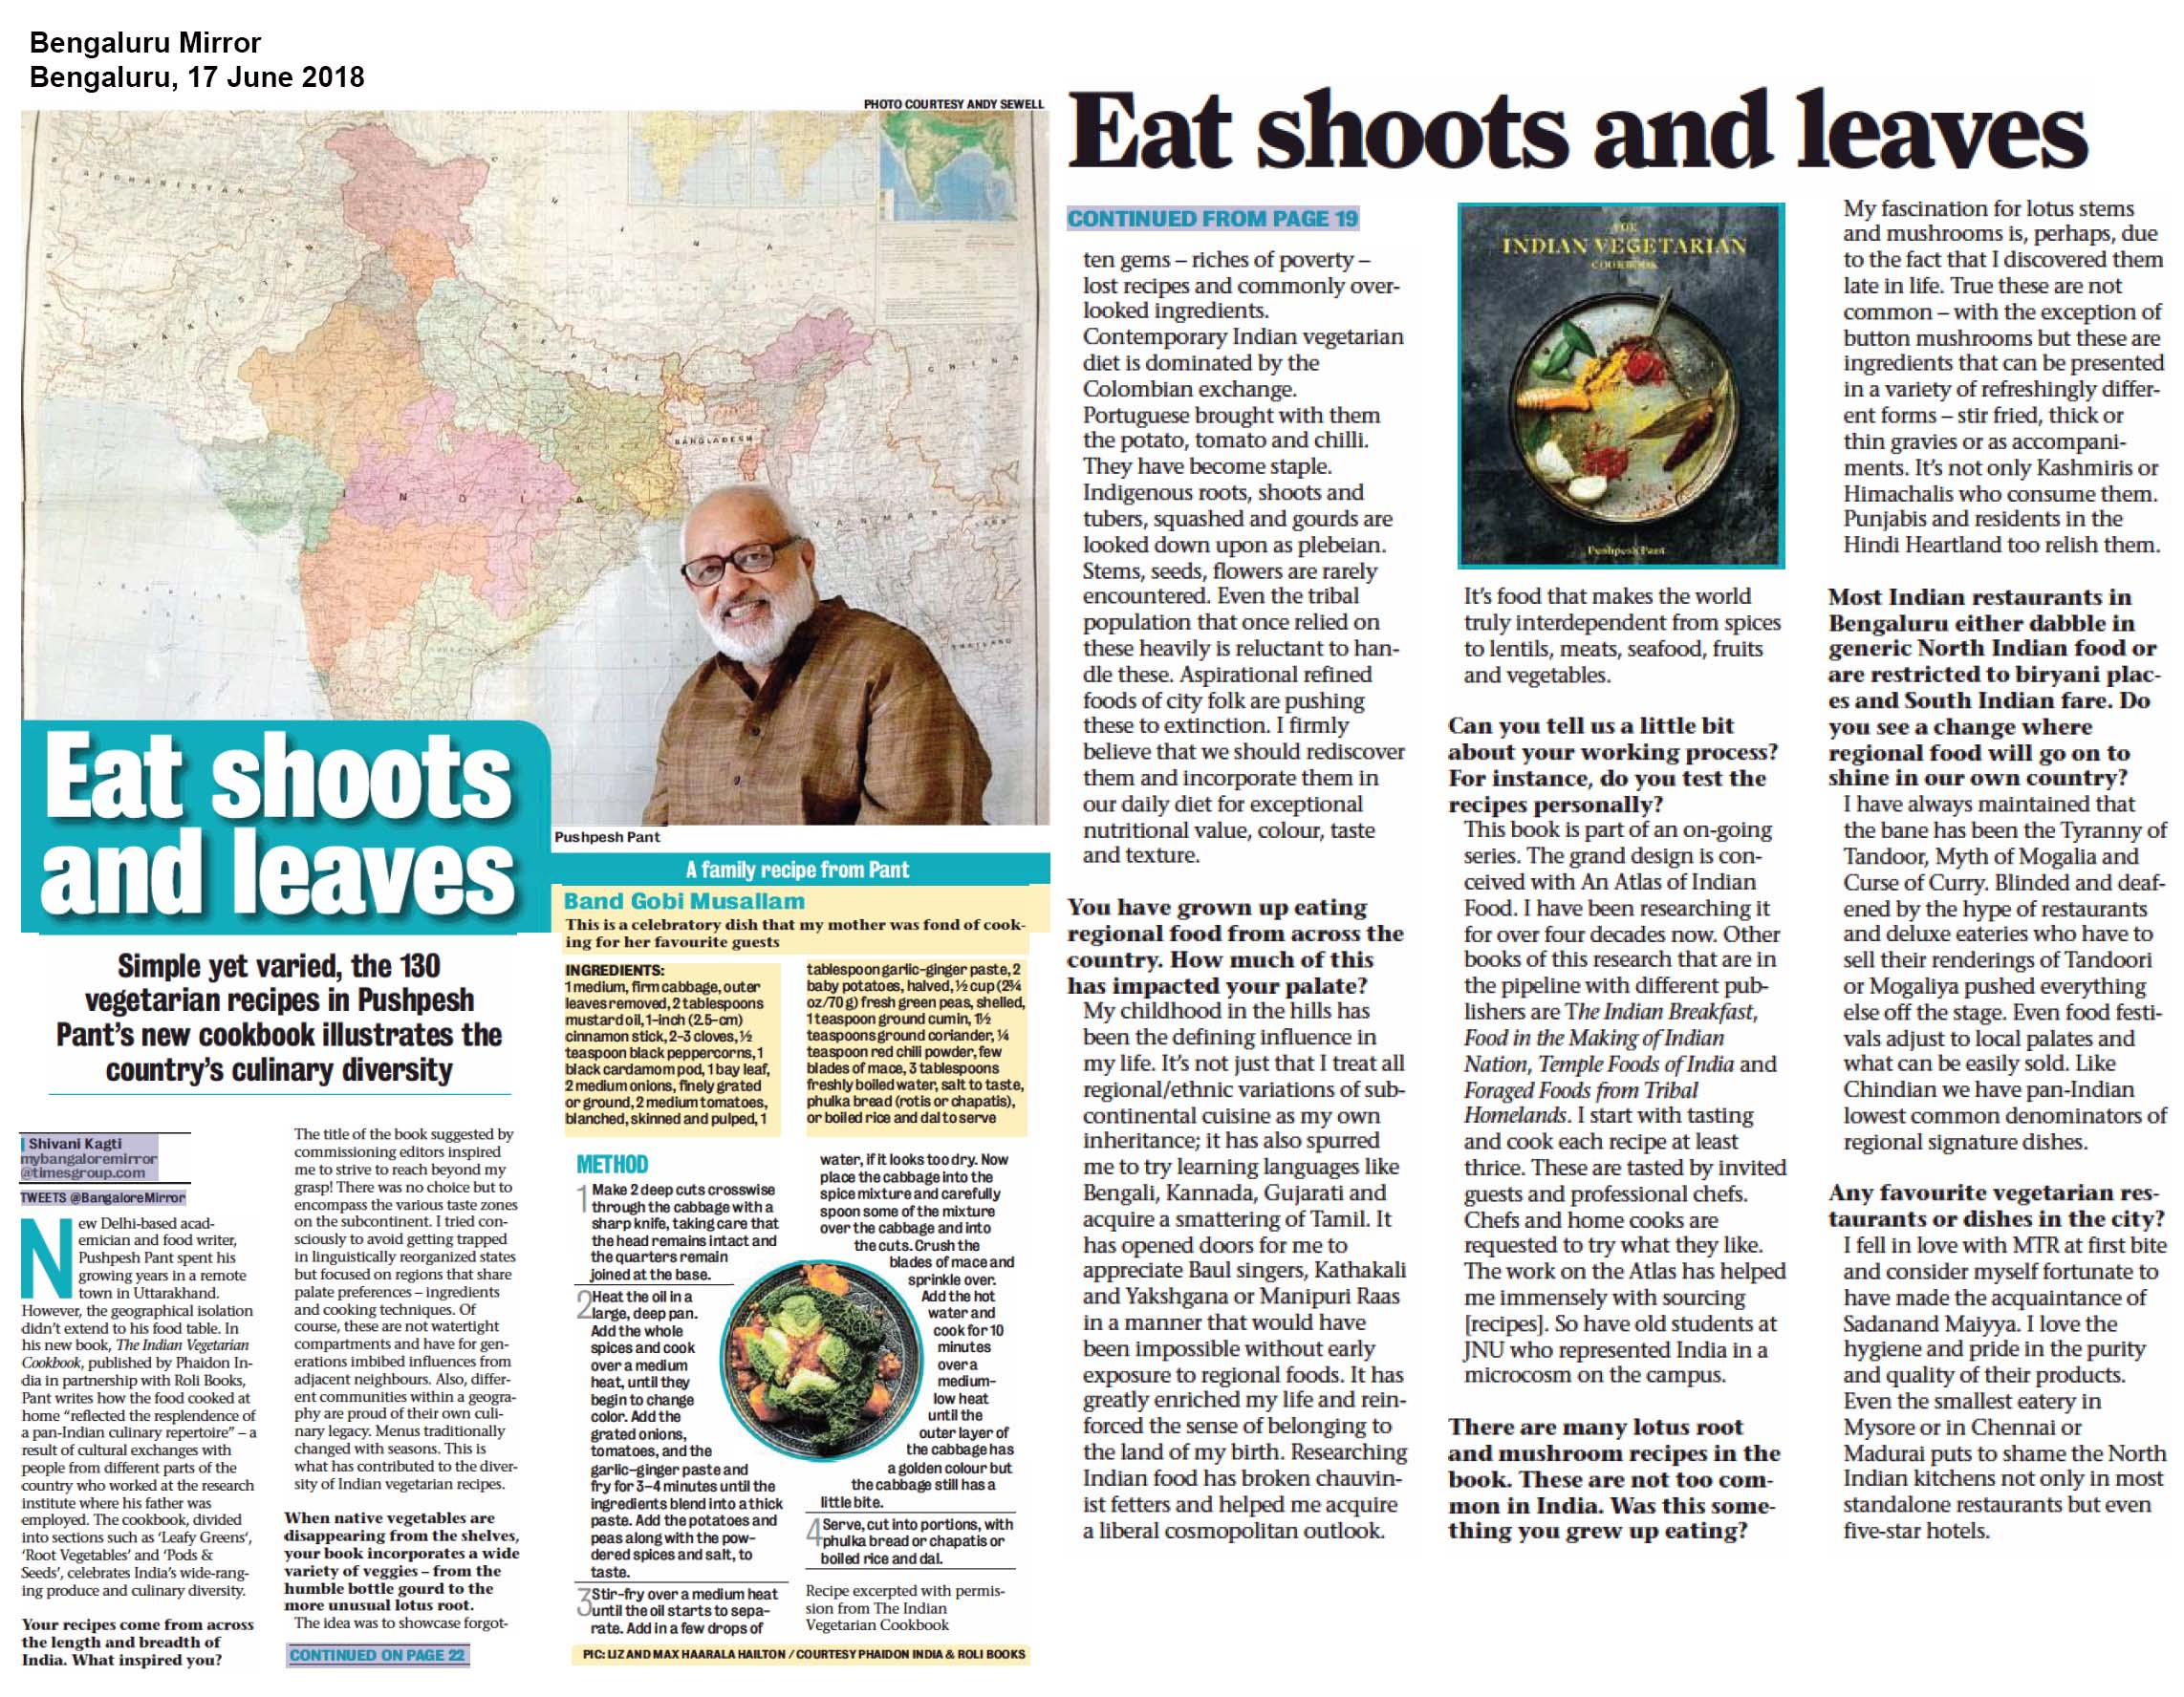 Eat shoots and leaves<br><span> Bengaluru Mirror, Bengaluru</span>